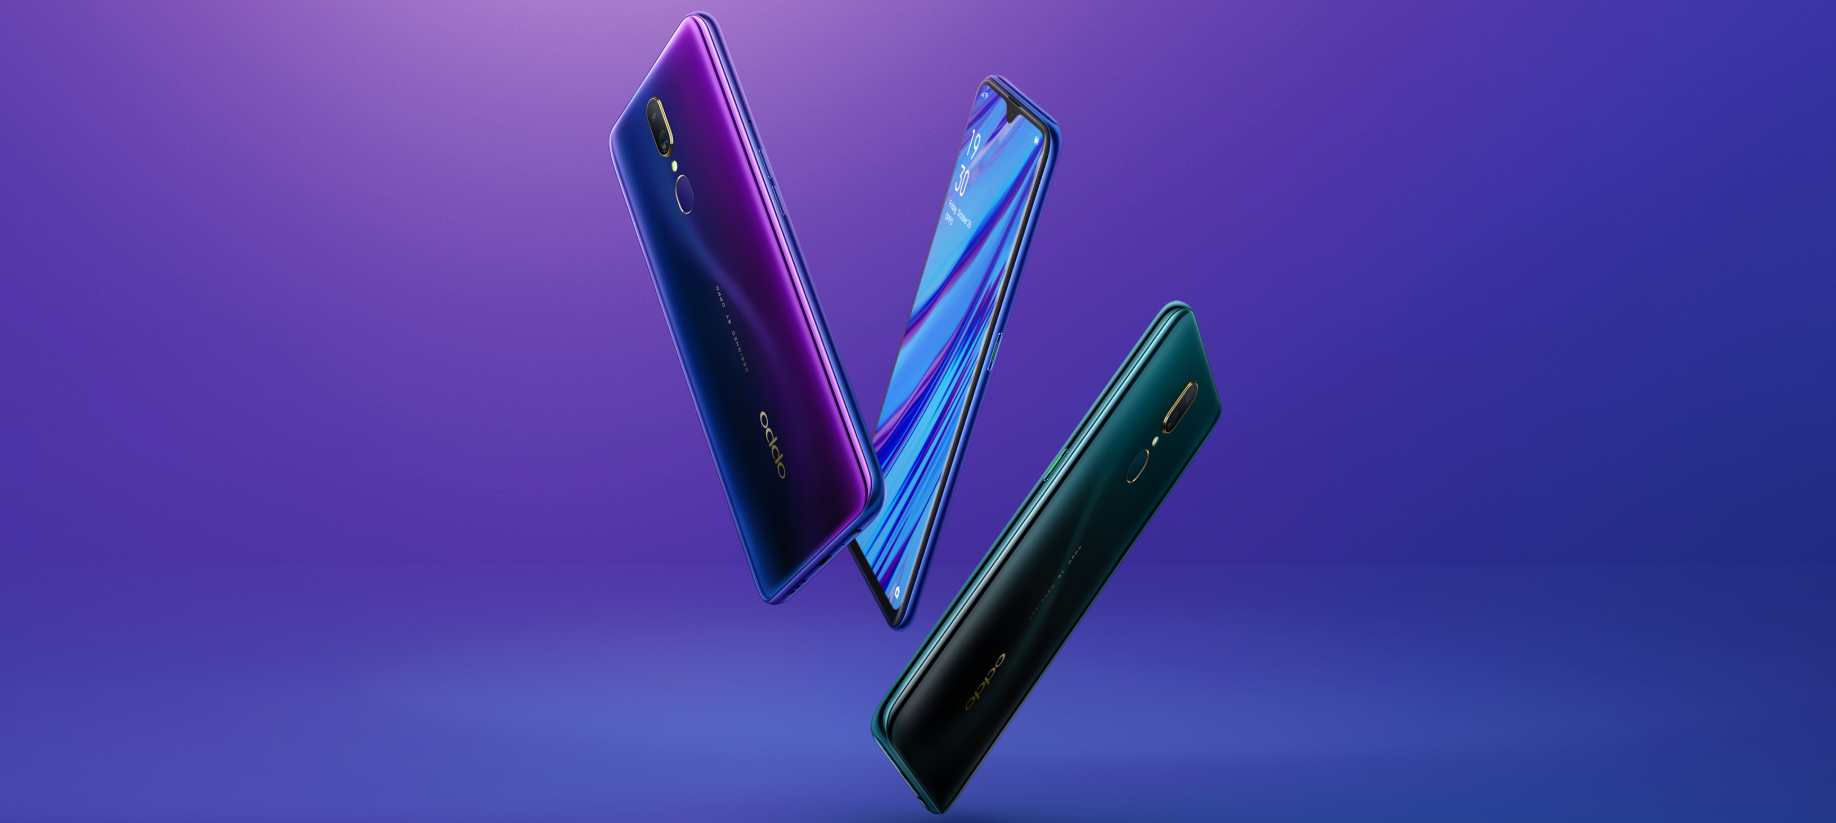 OPPO offers a bigger and better experience with A9